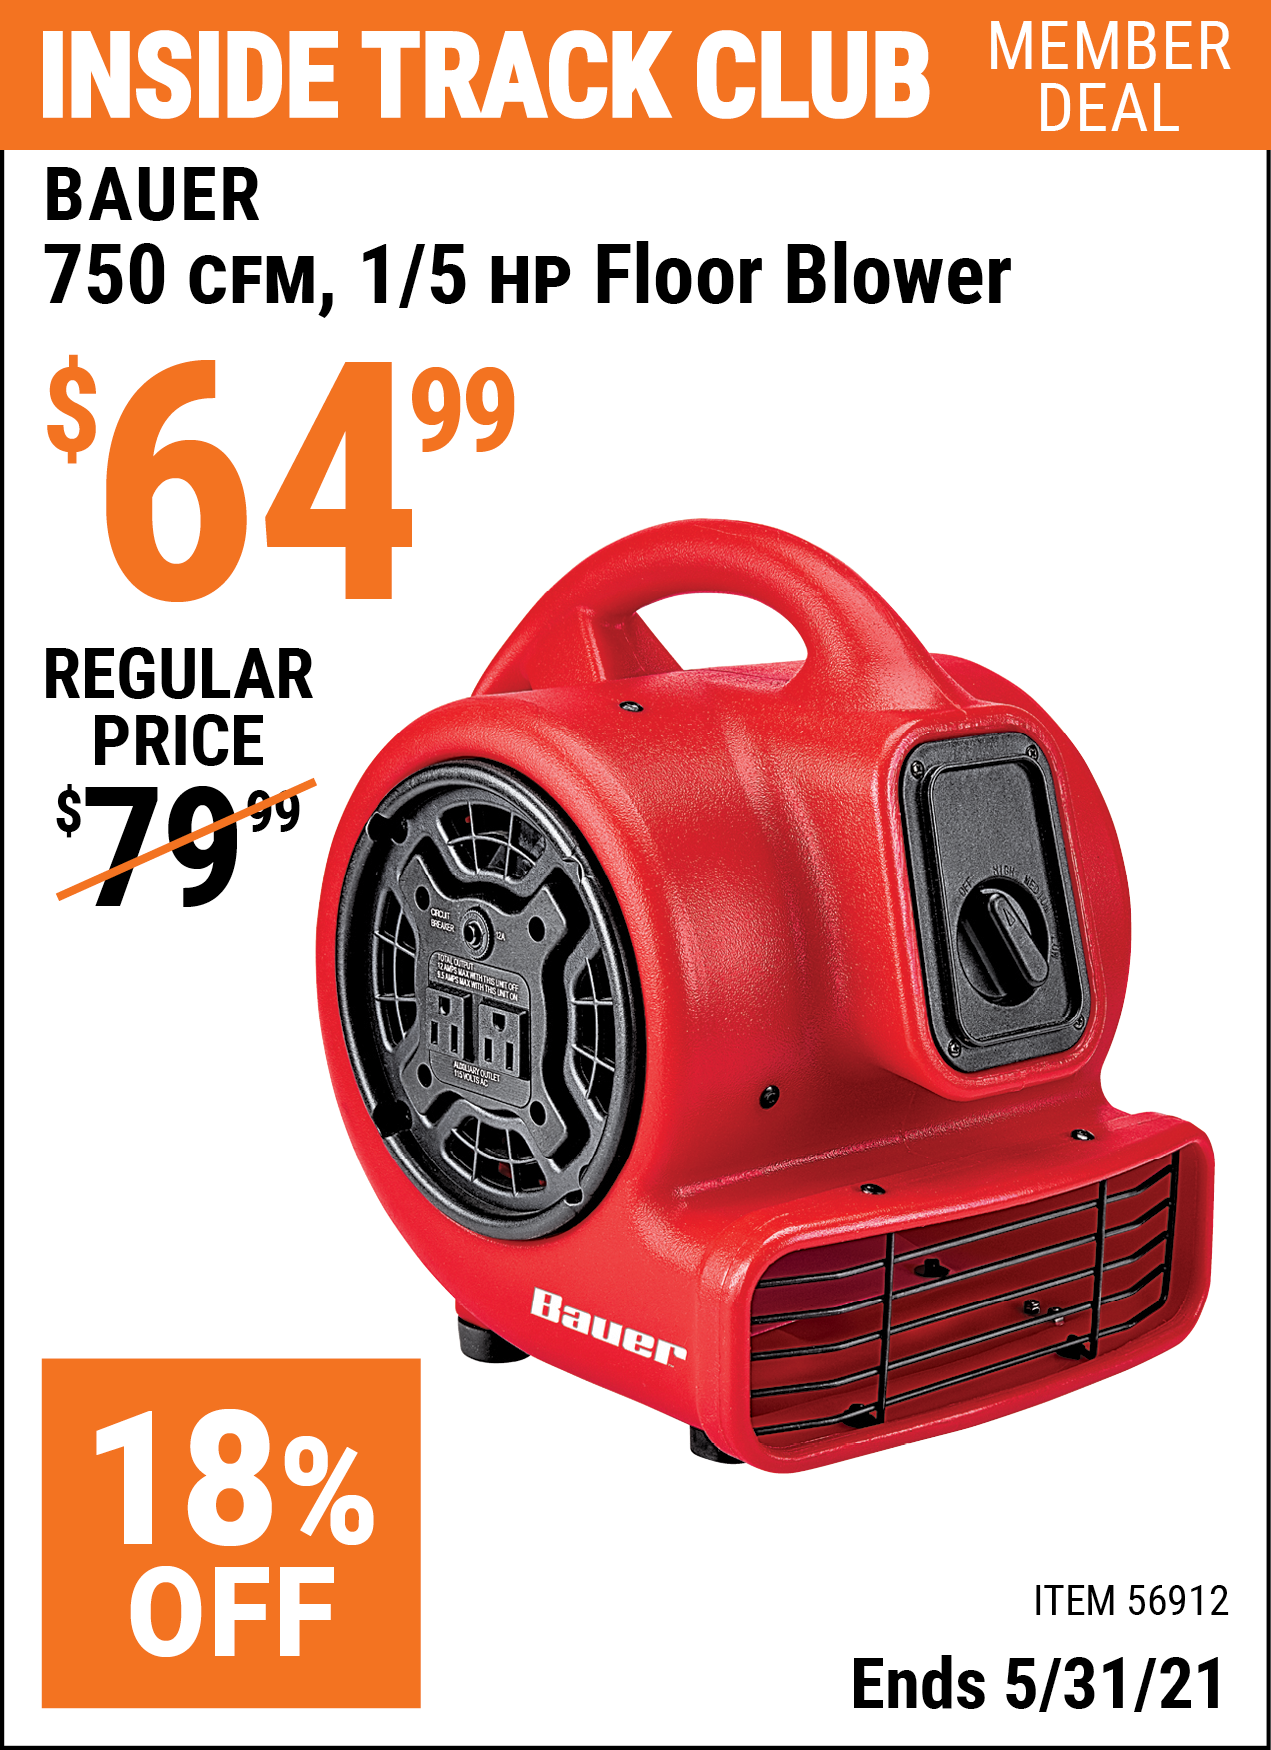 Inside Track Club members can buy the BAUER 750 CFM 1/5 HP Floor Blower (Item 56912) for $64.99, valid through 5/31/2021.